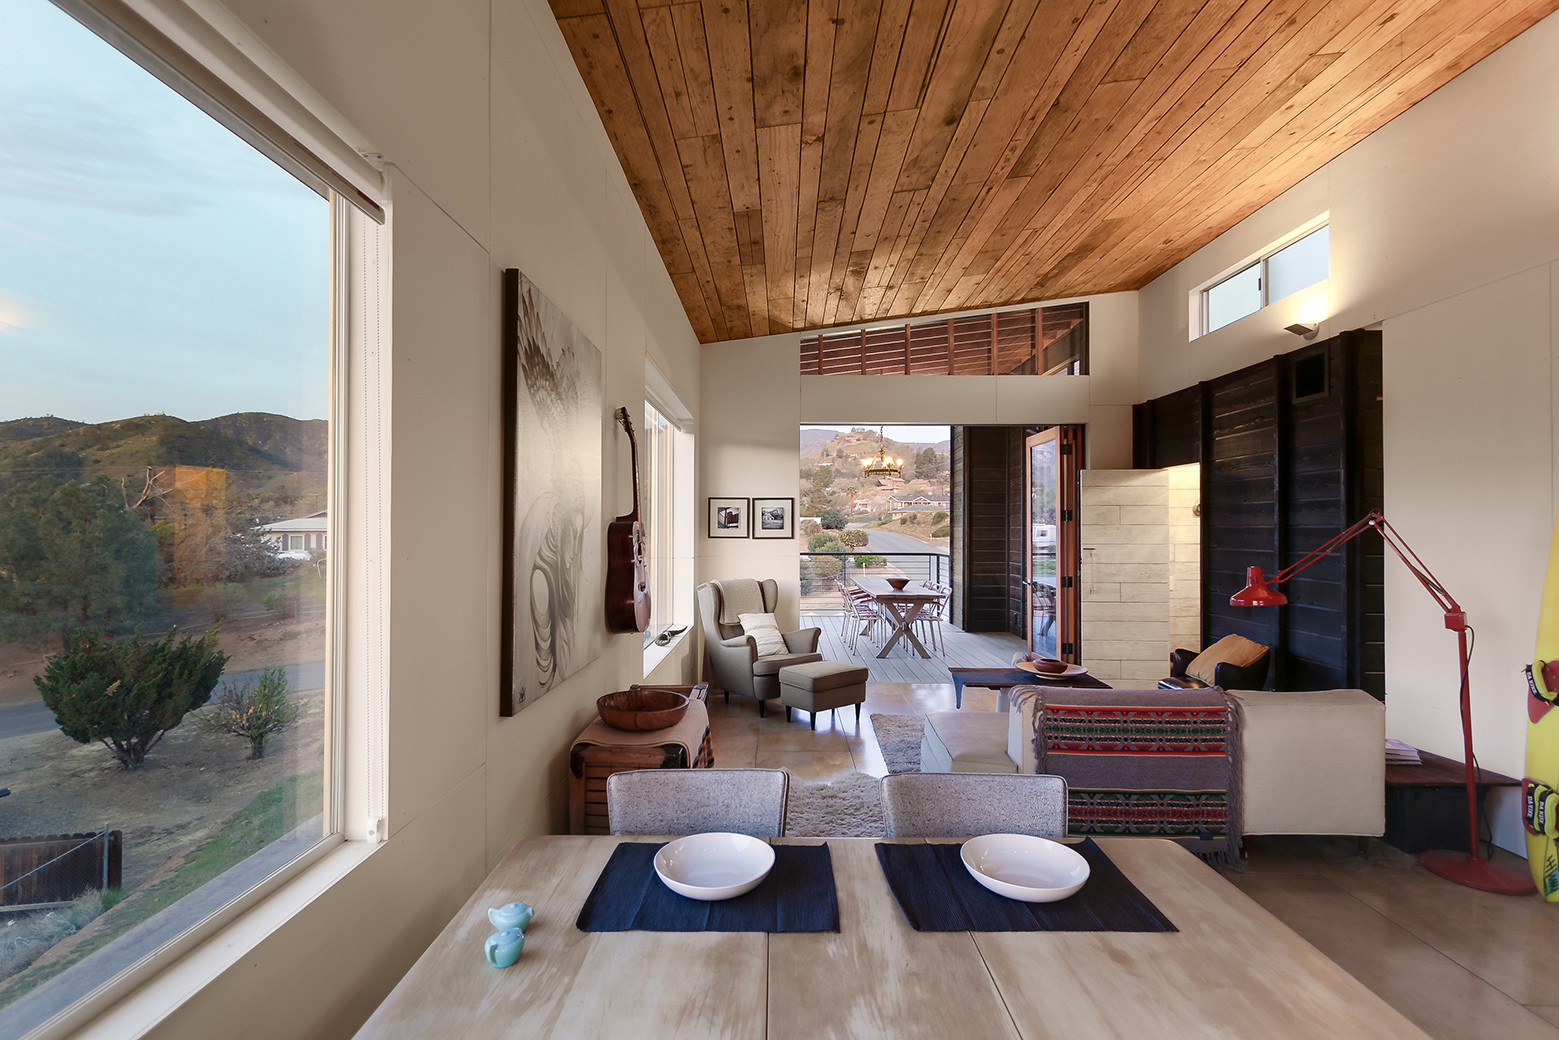 Highly crafted modern desert cabin idesignarch for California contemporary interior design